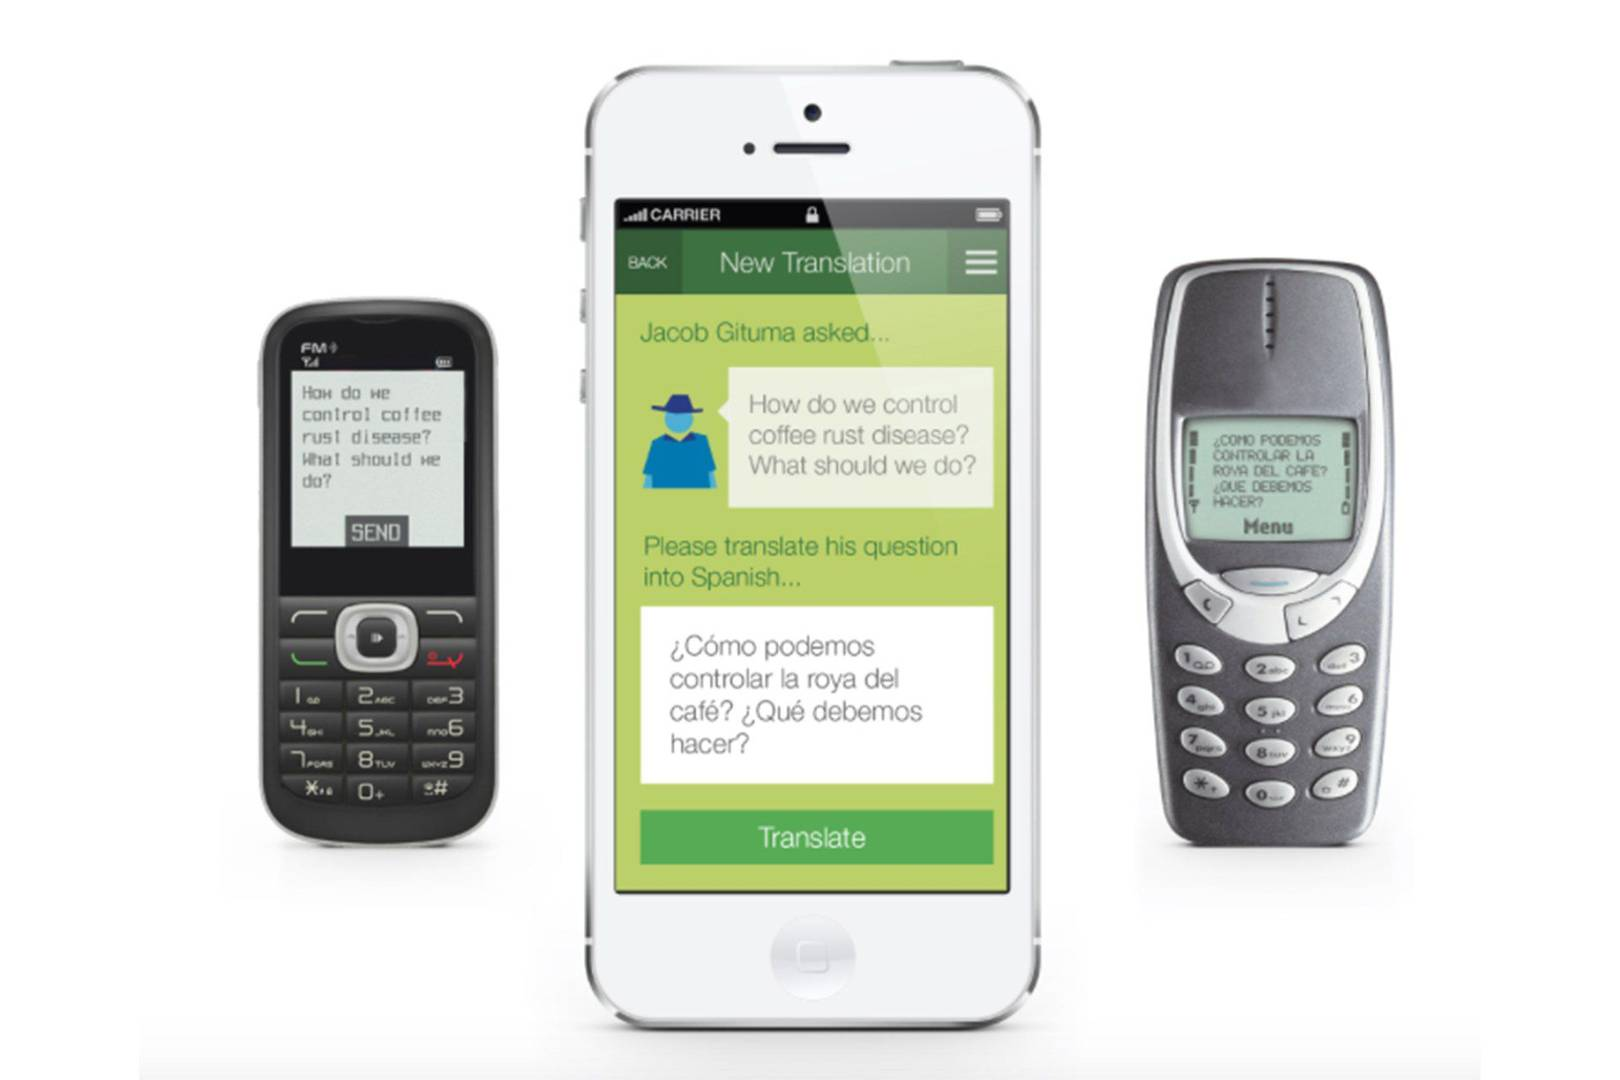 The peer-to-peer SMS network helping farmers connect   WIRED UK